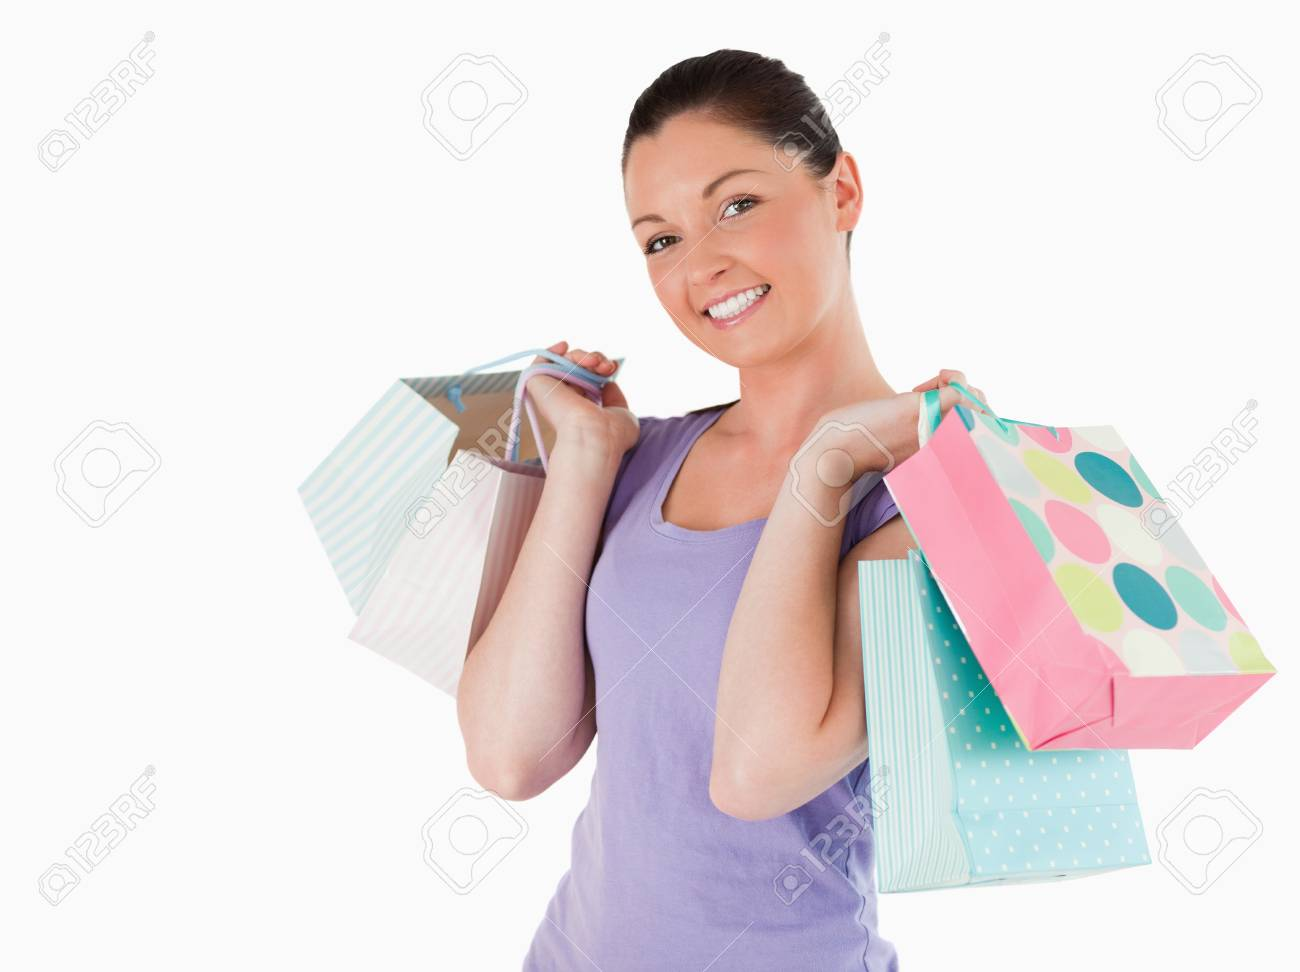 Gorgeous woman holding shopping bags while standing against a white background Stock Photo - 11180057